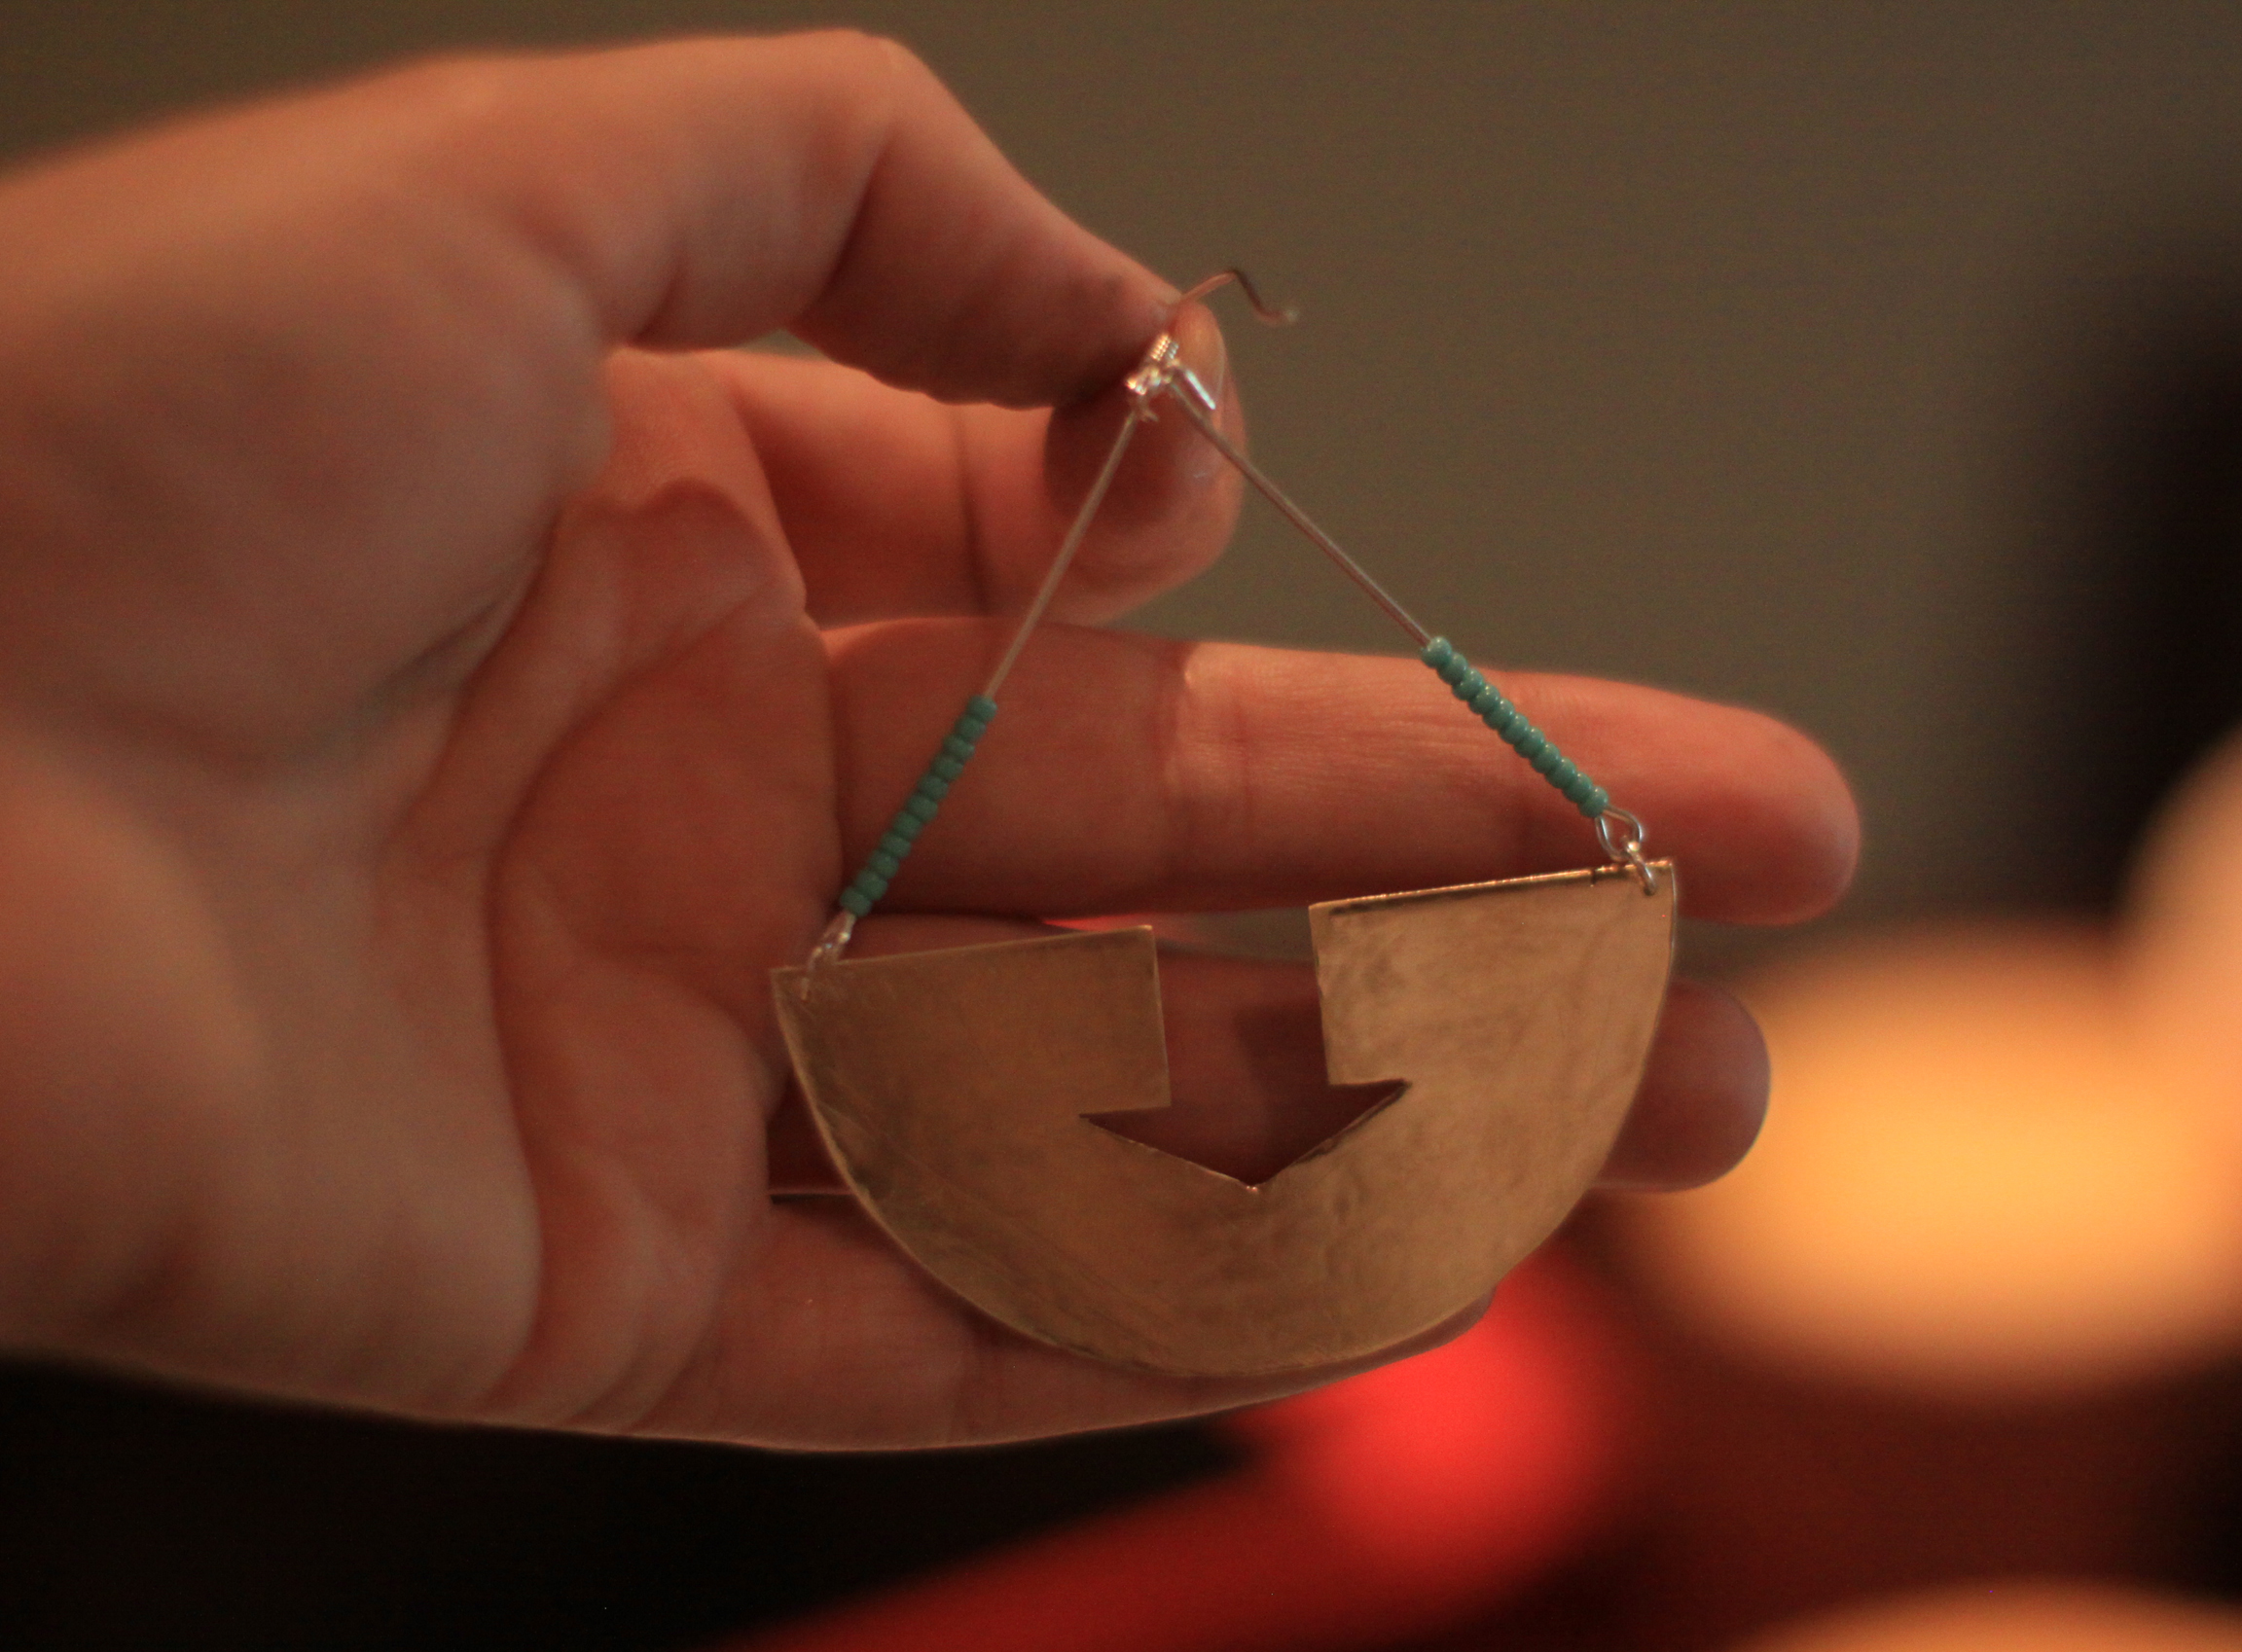 7. One finished earring! Design - 11:11 earring designed and created by East of the Sun Denise and Shane Faddis